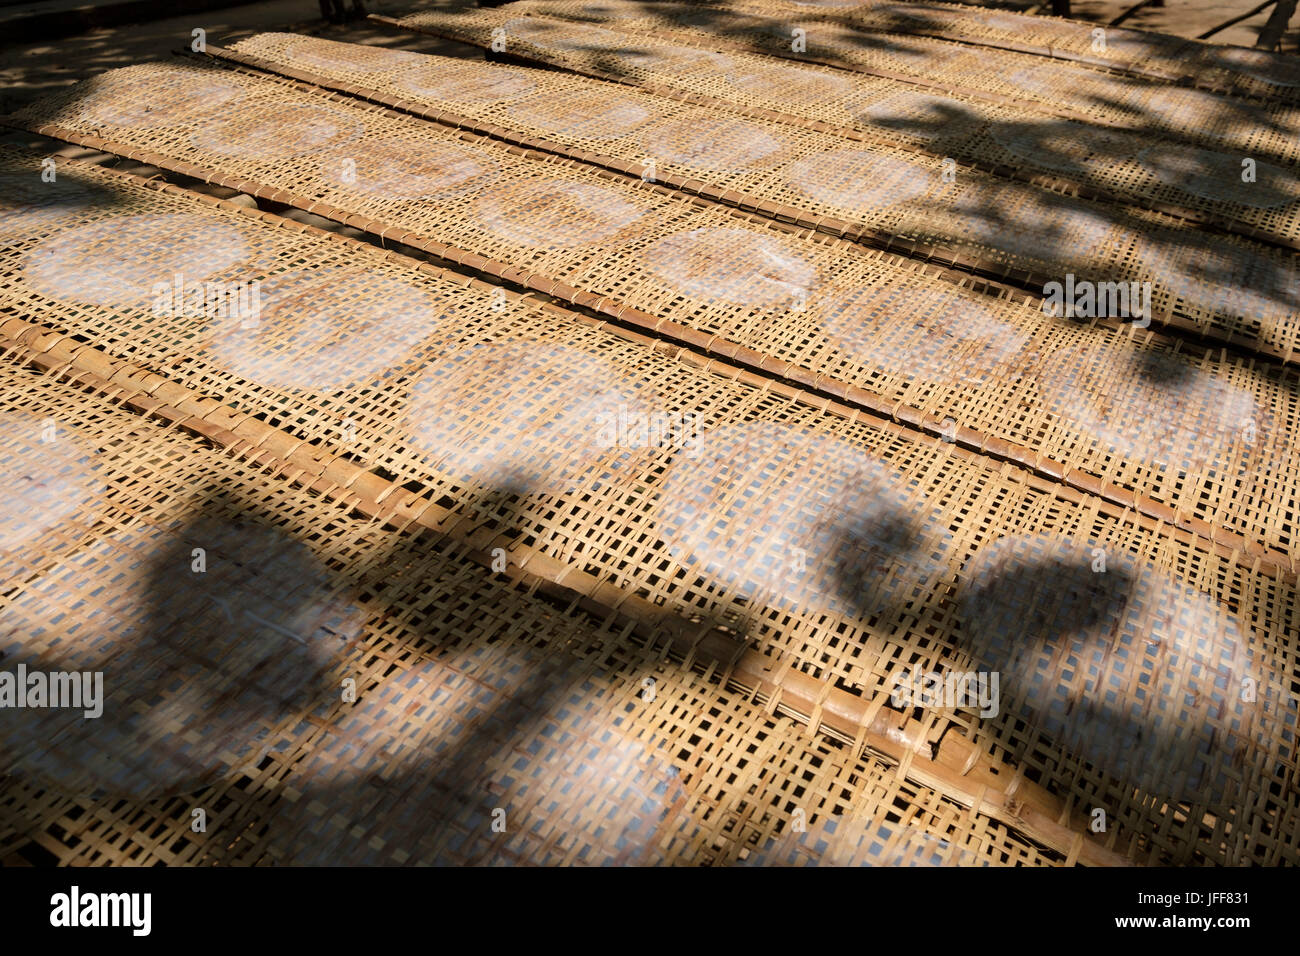 Handmade rice paper wrappers drying in the sun in Vietnam, Asia - Stock Image